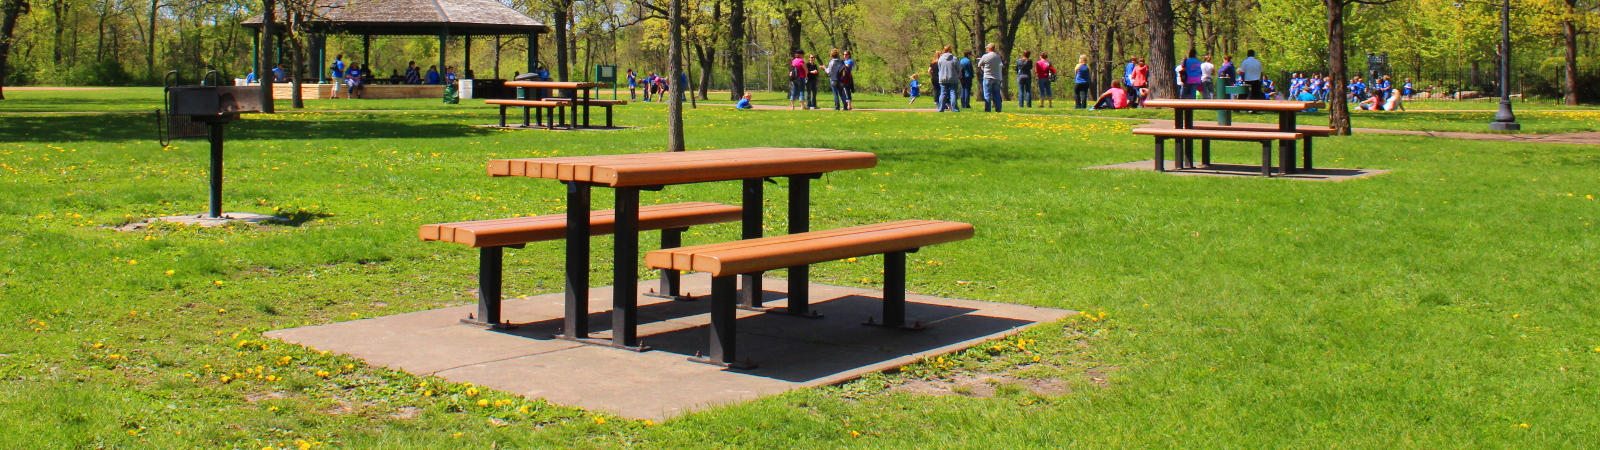 People gathering at a public park with picnic tables and gazebos